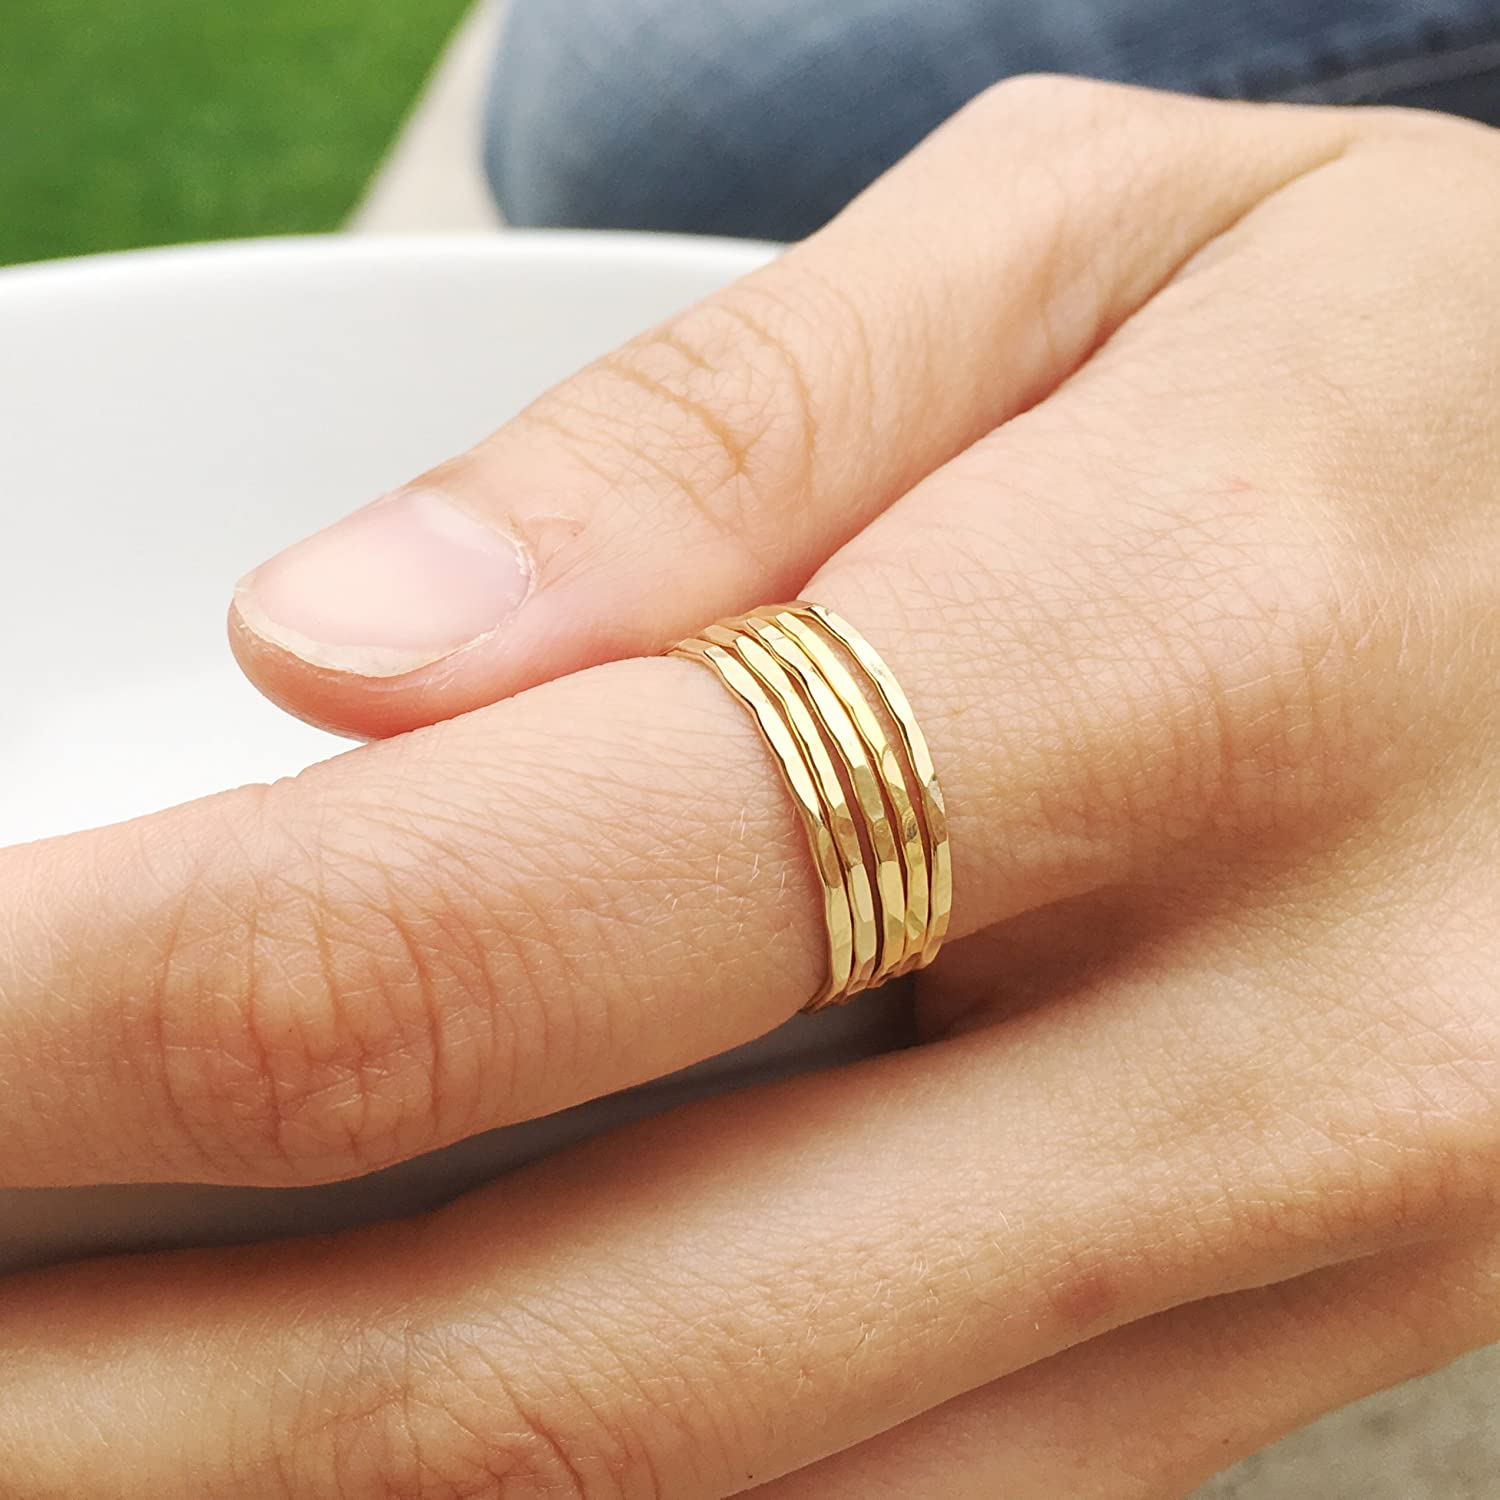 Individual Stacking Ring 14k Gold Filled, Dainty Little Plain Band, Size 8